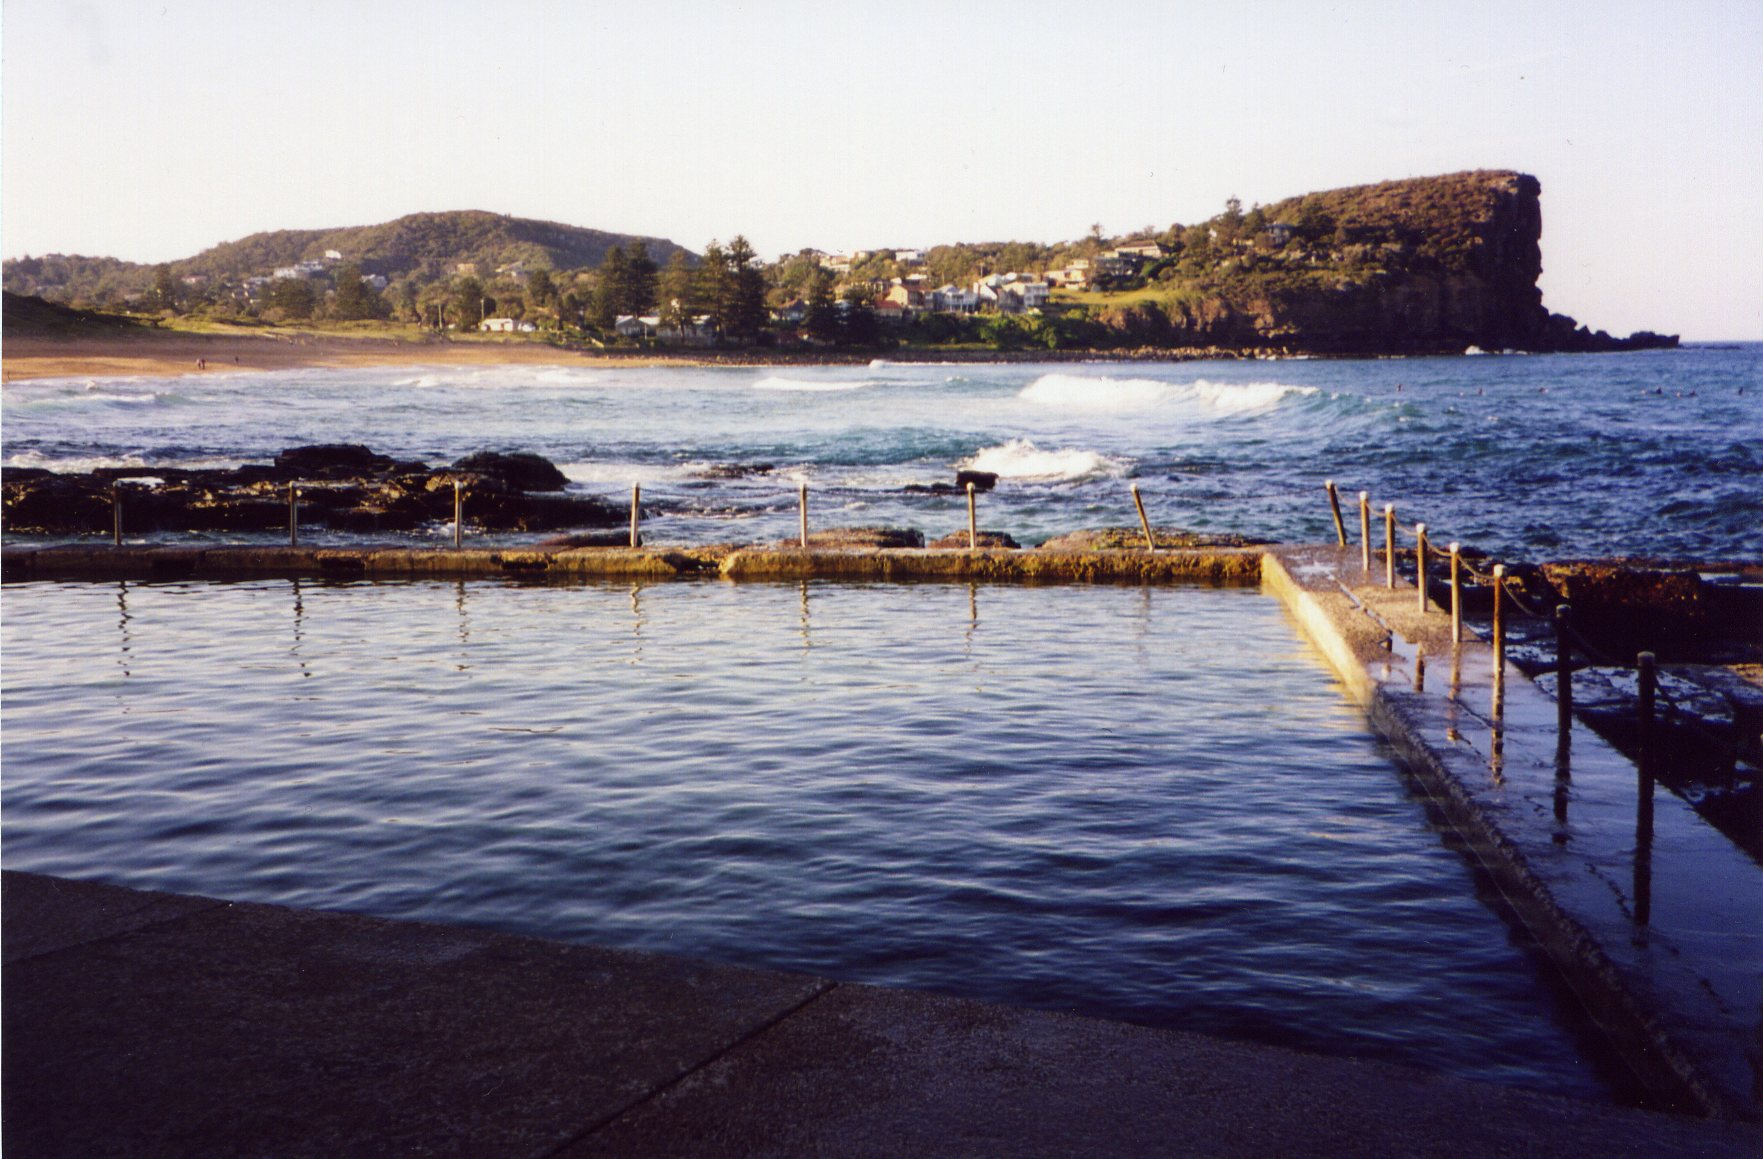 Avalon Rock Pool, Avalon Beach, NSW, Australia